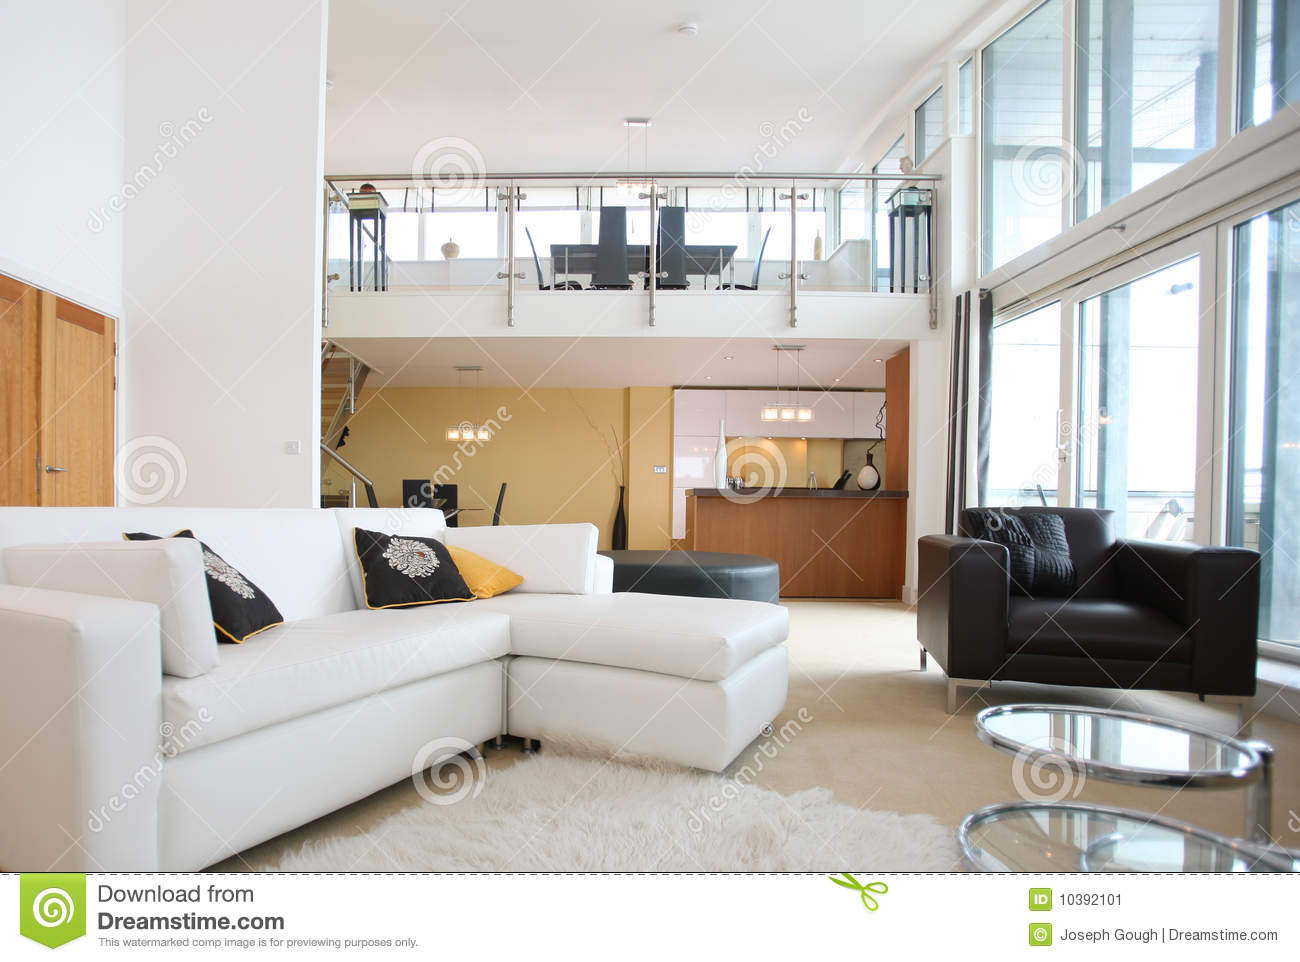 Int rieur ouvert moderne d 39 appartement de plan image stock image 10392101 - Interieur appartement moderne ...